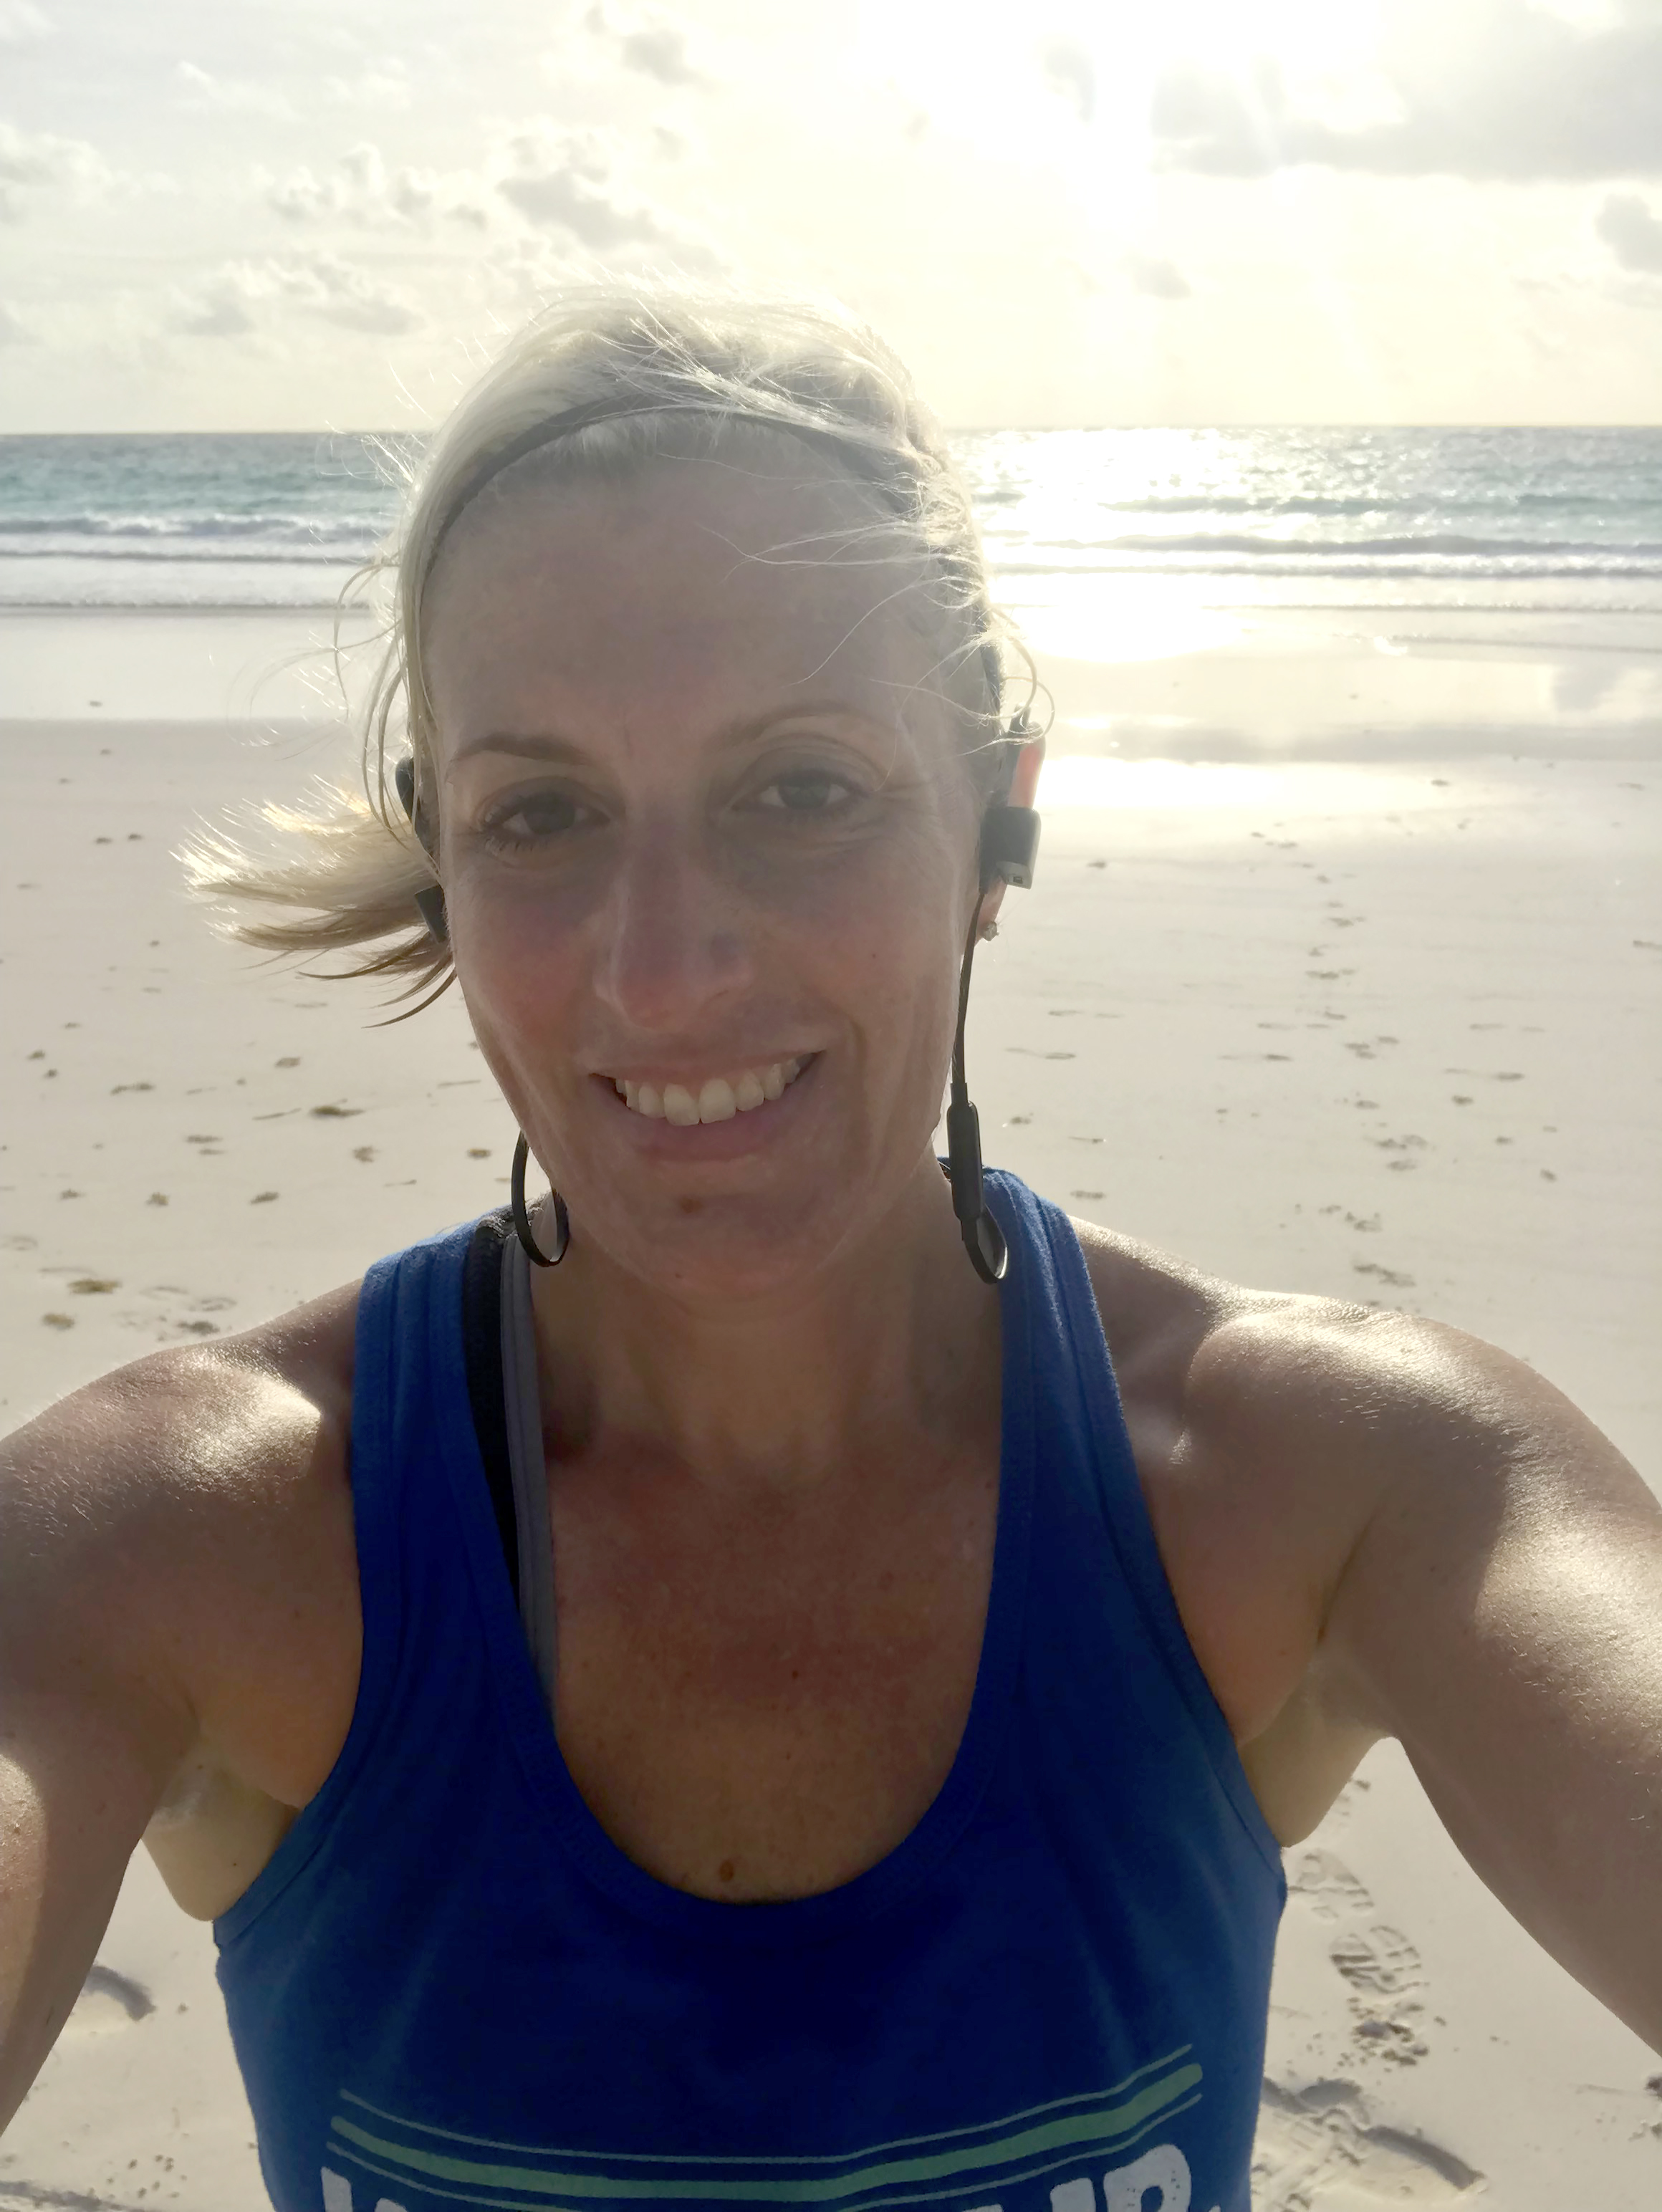 Alison Houck doesn't let vacation stop her from exercising. Here she is running on the beach in the Bahamas.